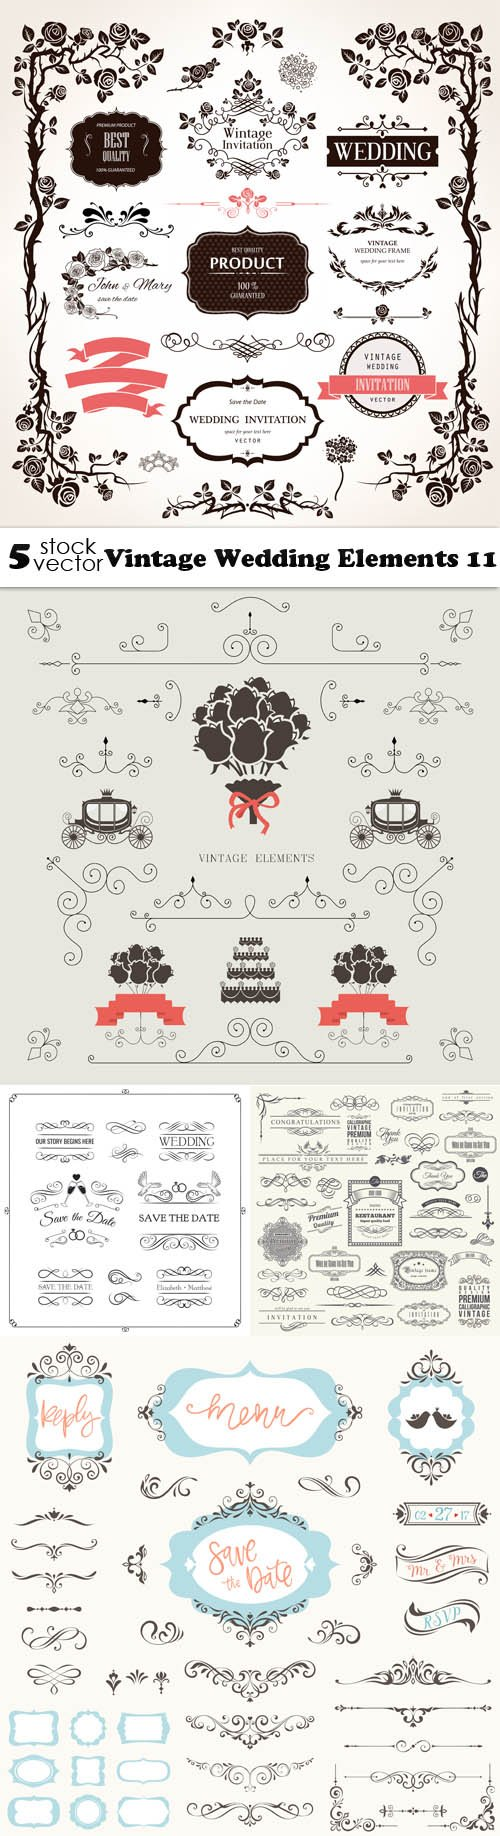 Vectors - Vintage Wedding Elements 11